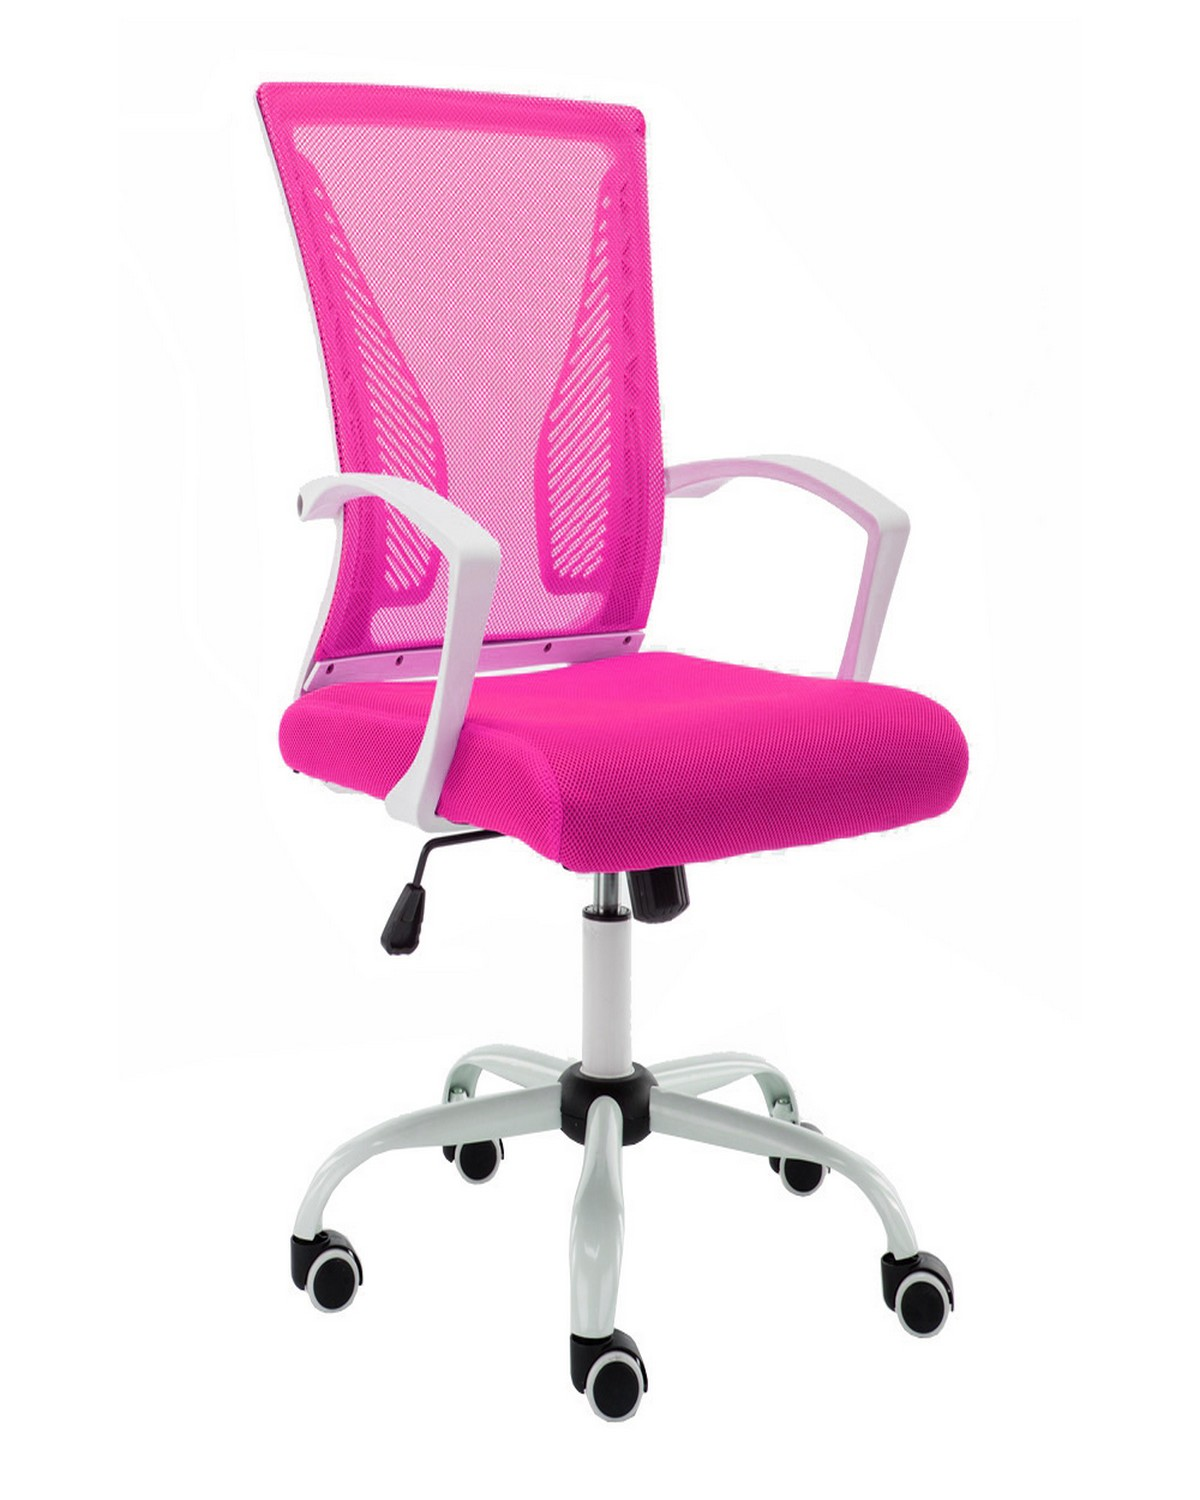 NEW ZUNA OFFICE DESK CHAIR MID BACK MESH